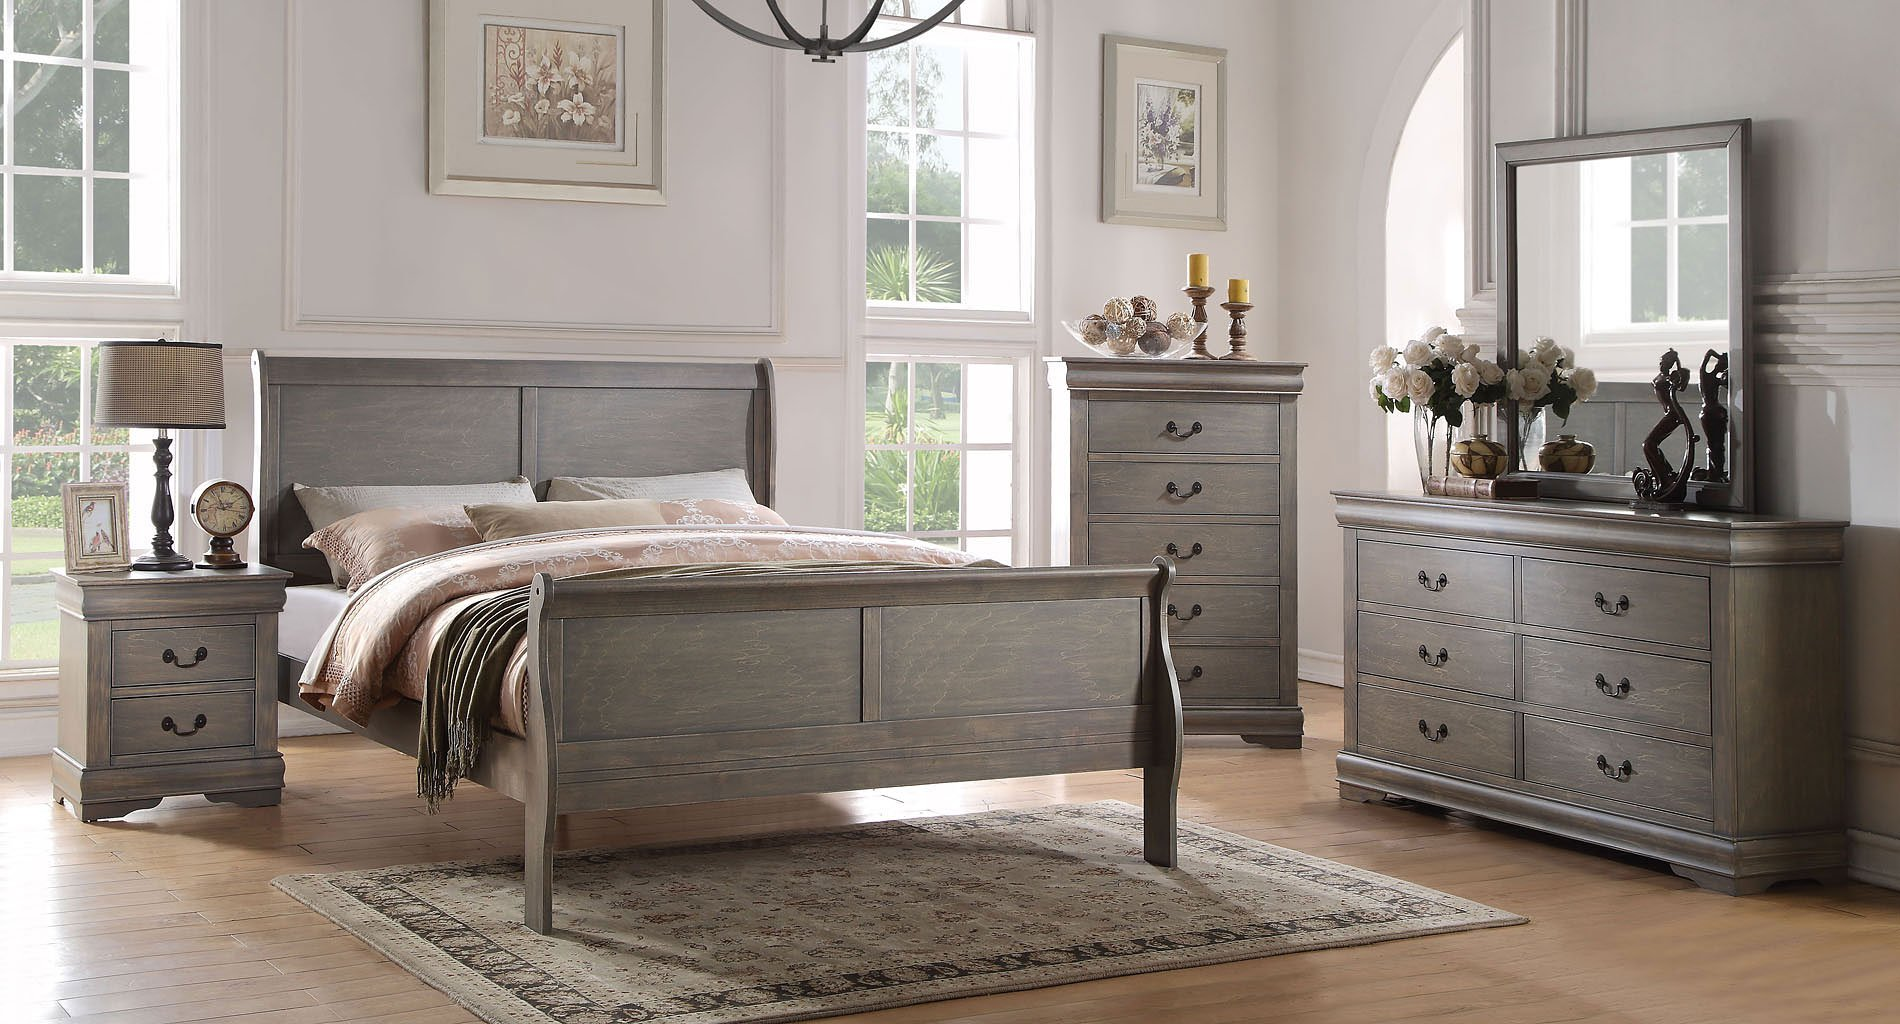 Louis philippe youth sleigh bedroom set antique gray - Louis philippe bedroom collection ...